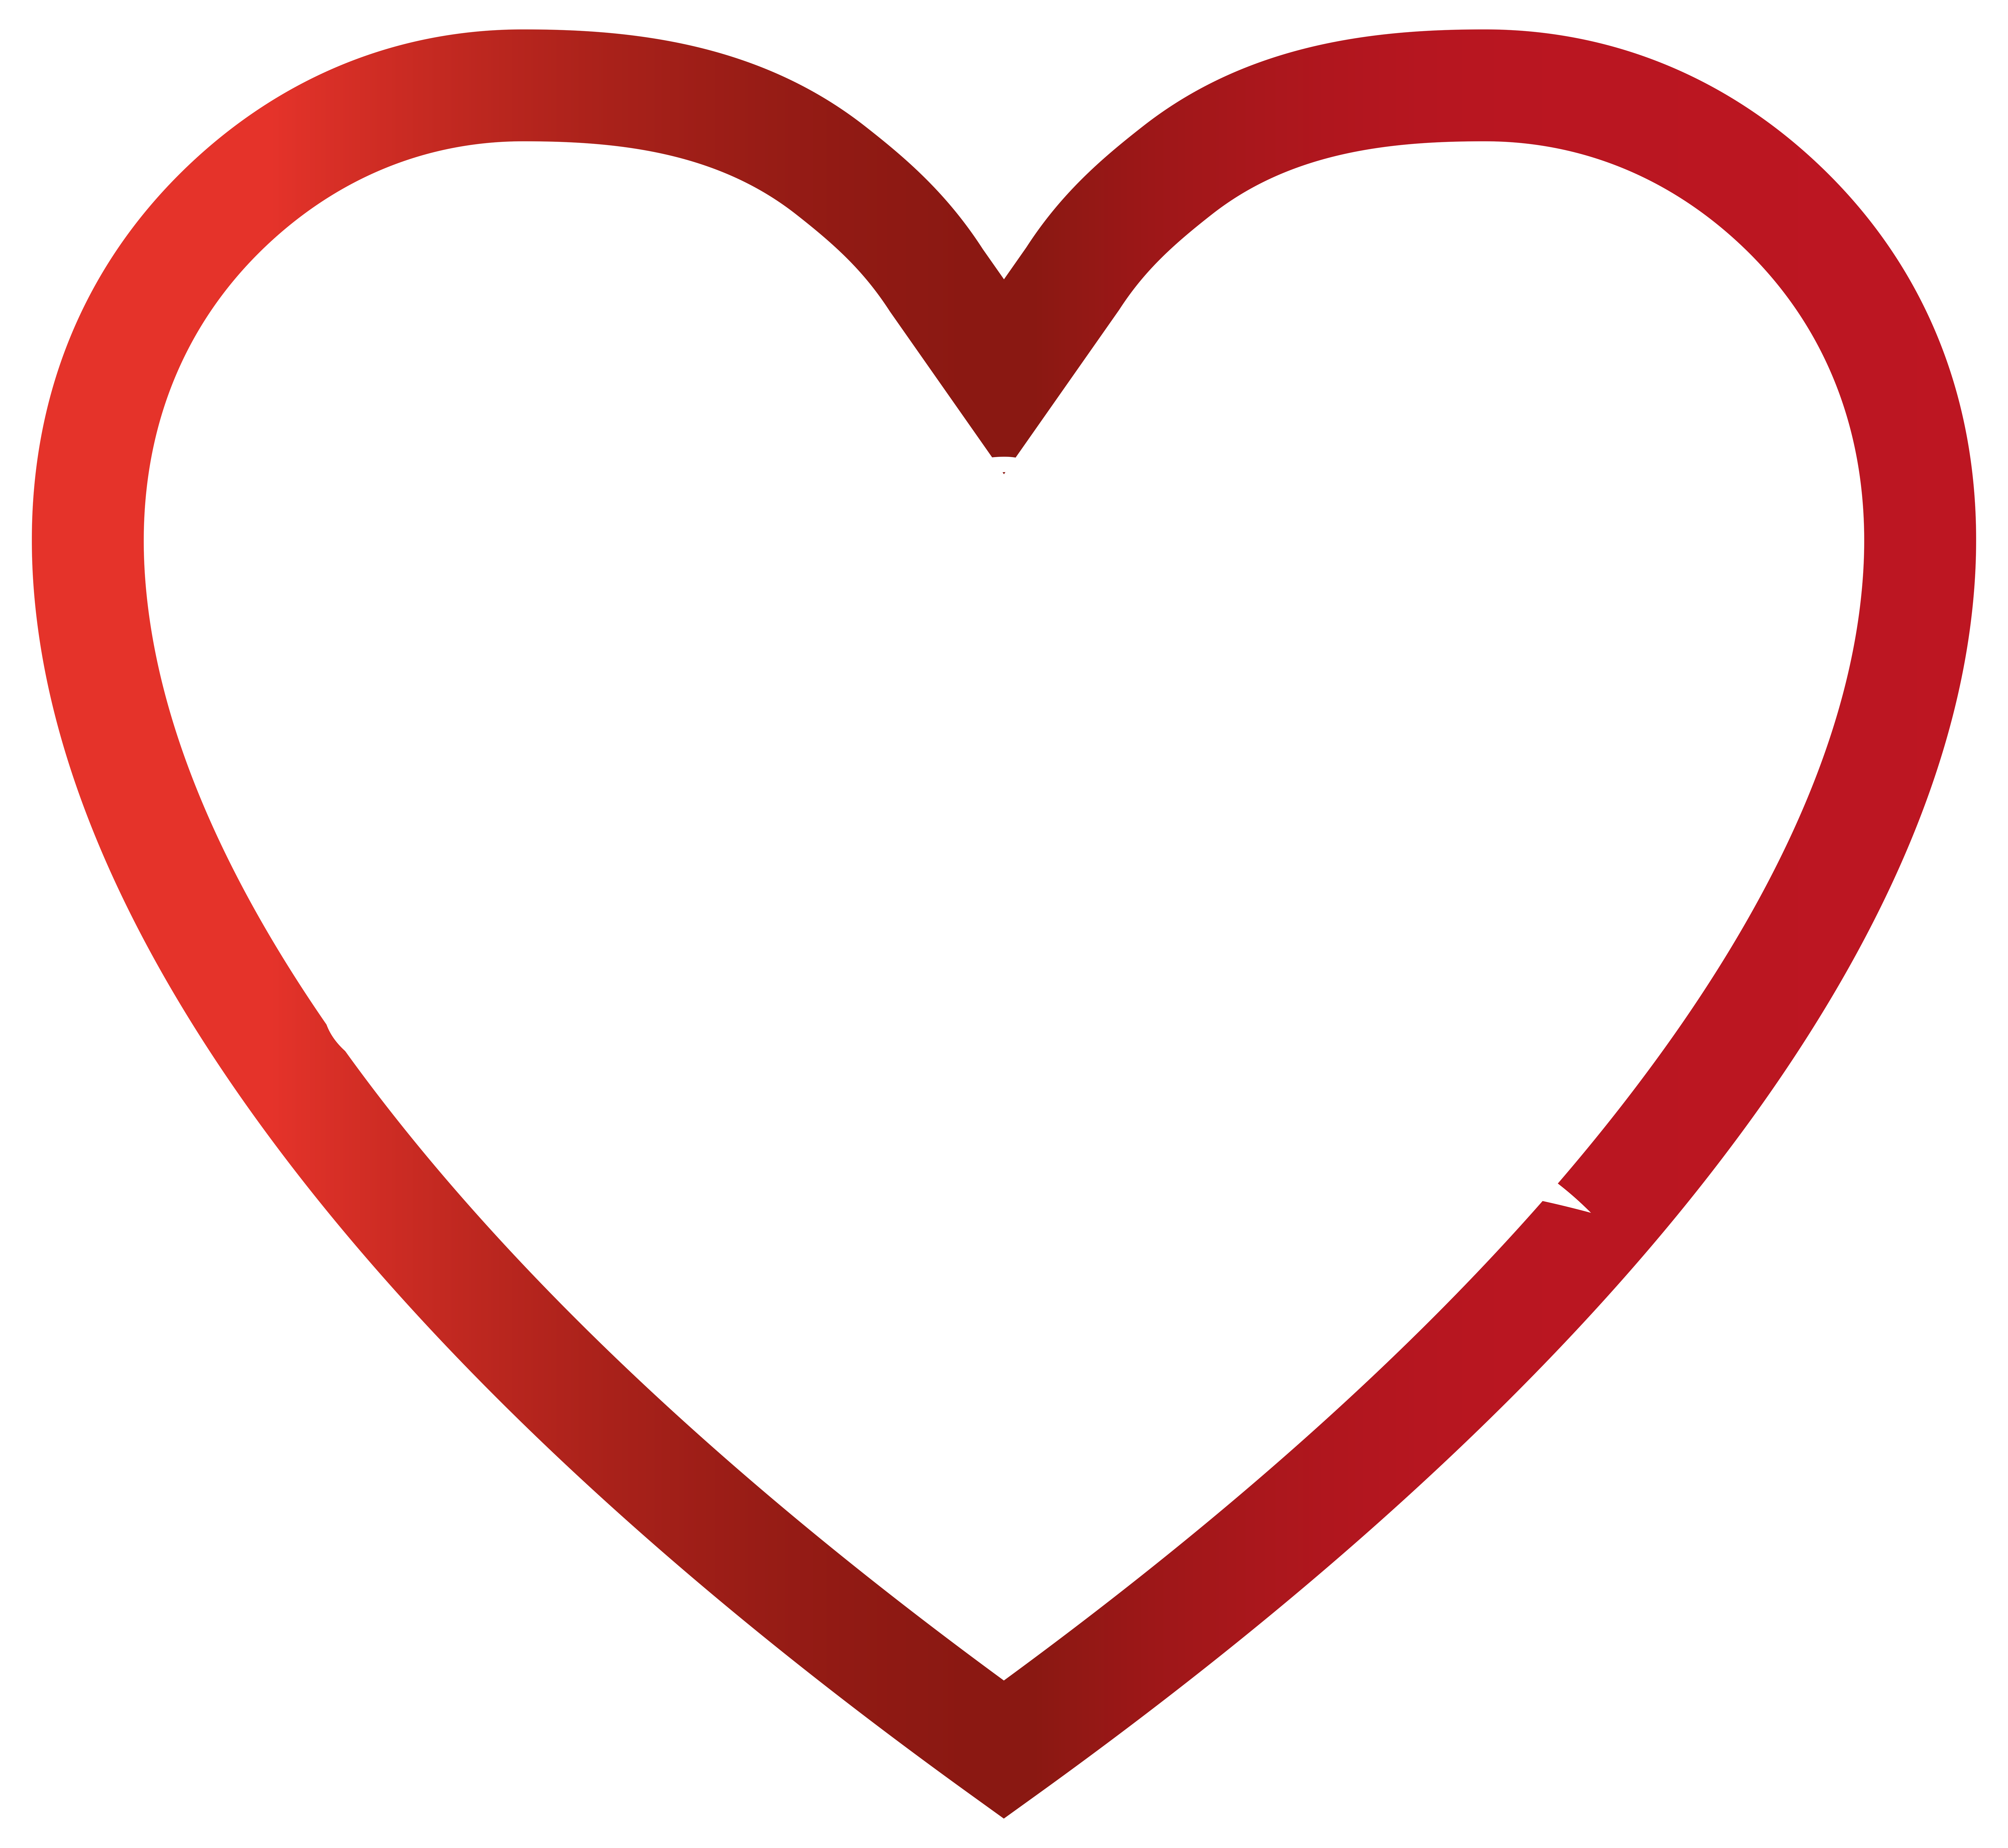 Heart transparent clip art. Love clipart png image freeuse stock